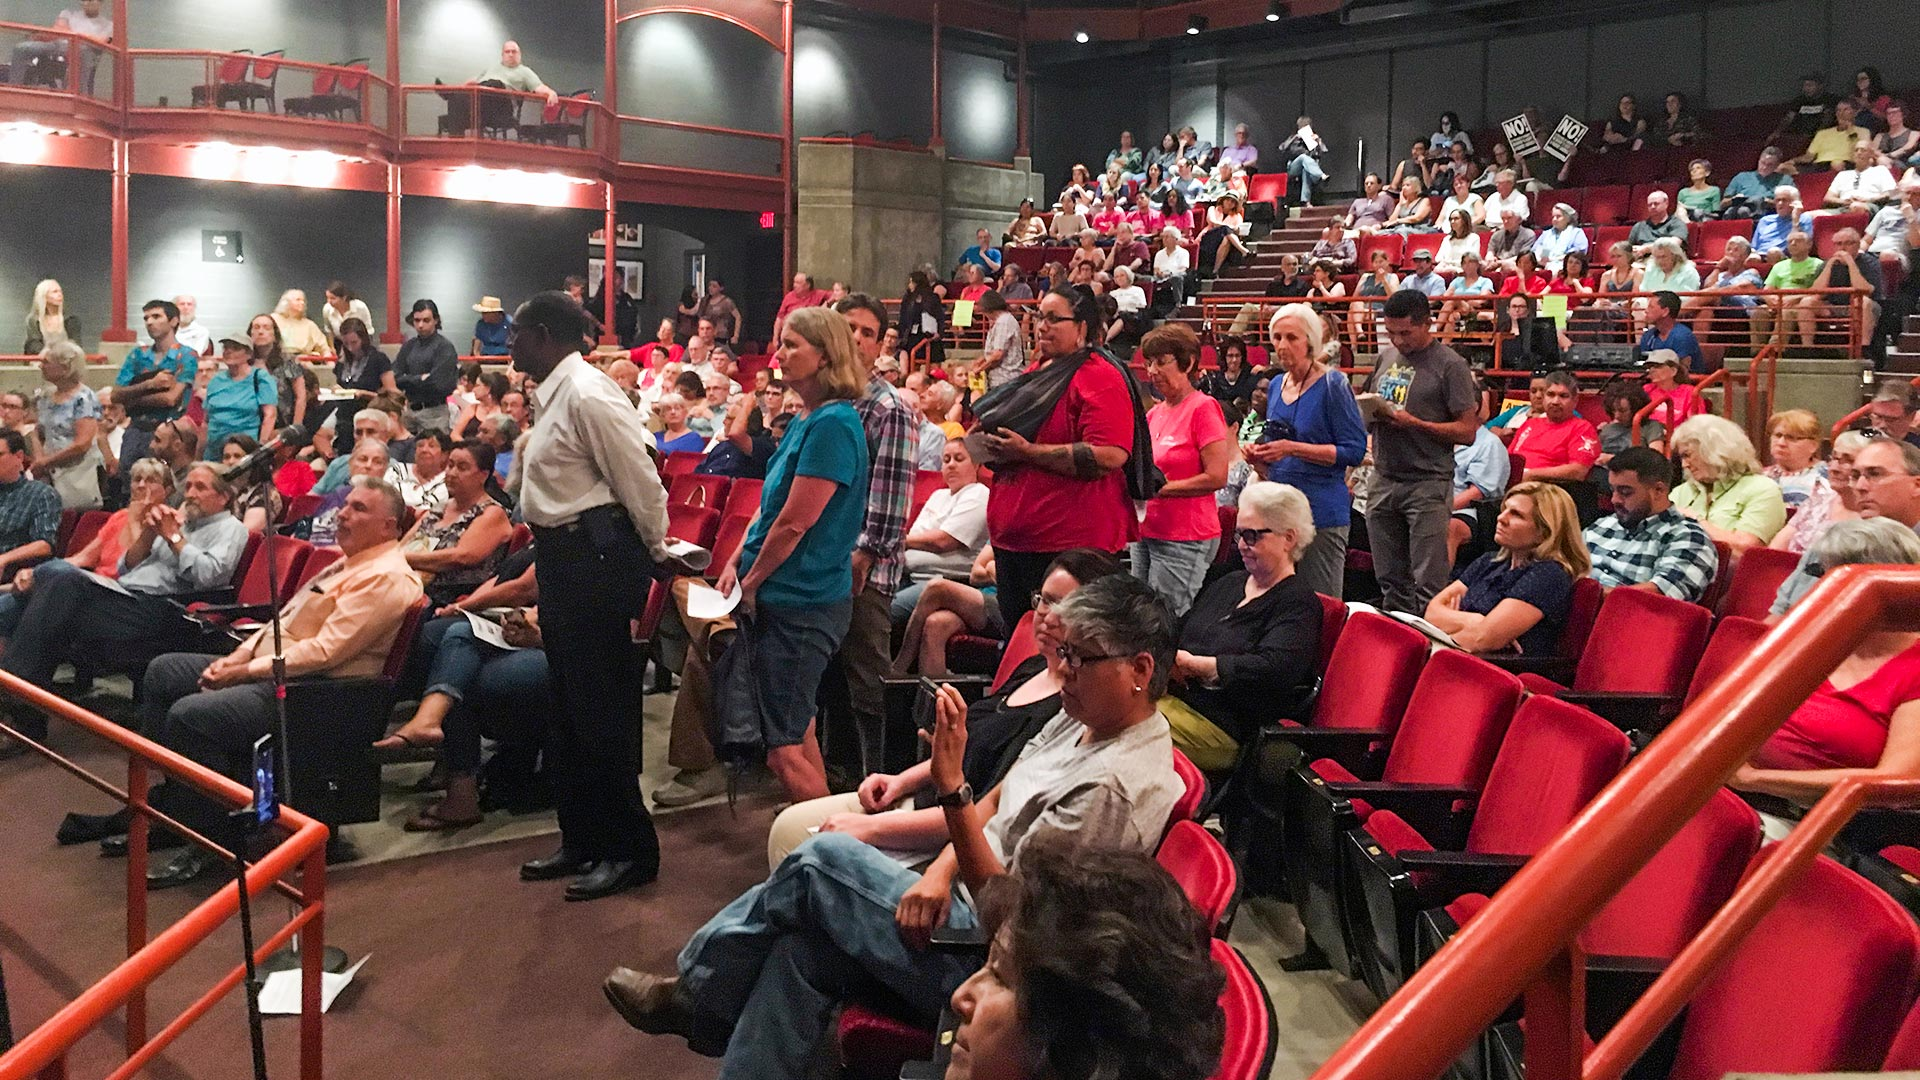 People wait in line to speak about the congressional efforts to repeal and replace the Affordable Care Act, at a town hall hosted by U.S. Rep. Raúl Grijalva, D-Ariz.